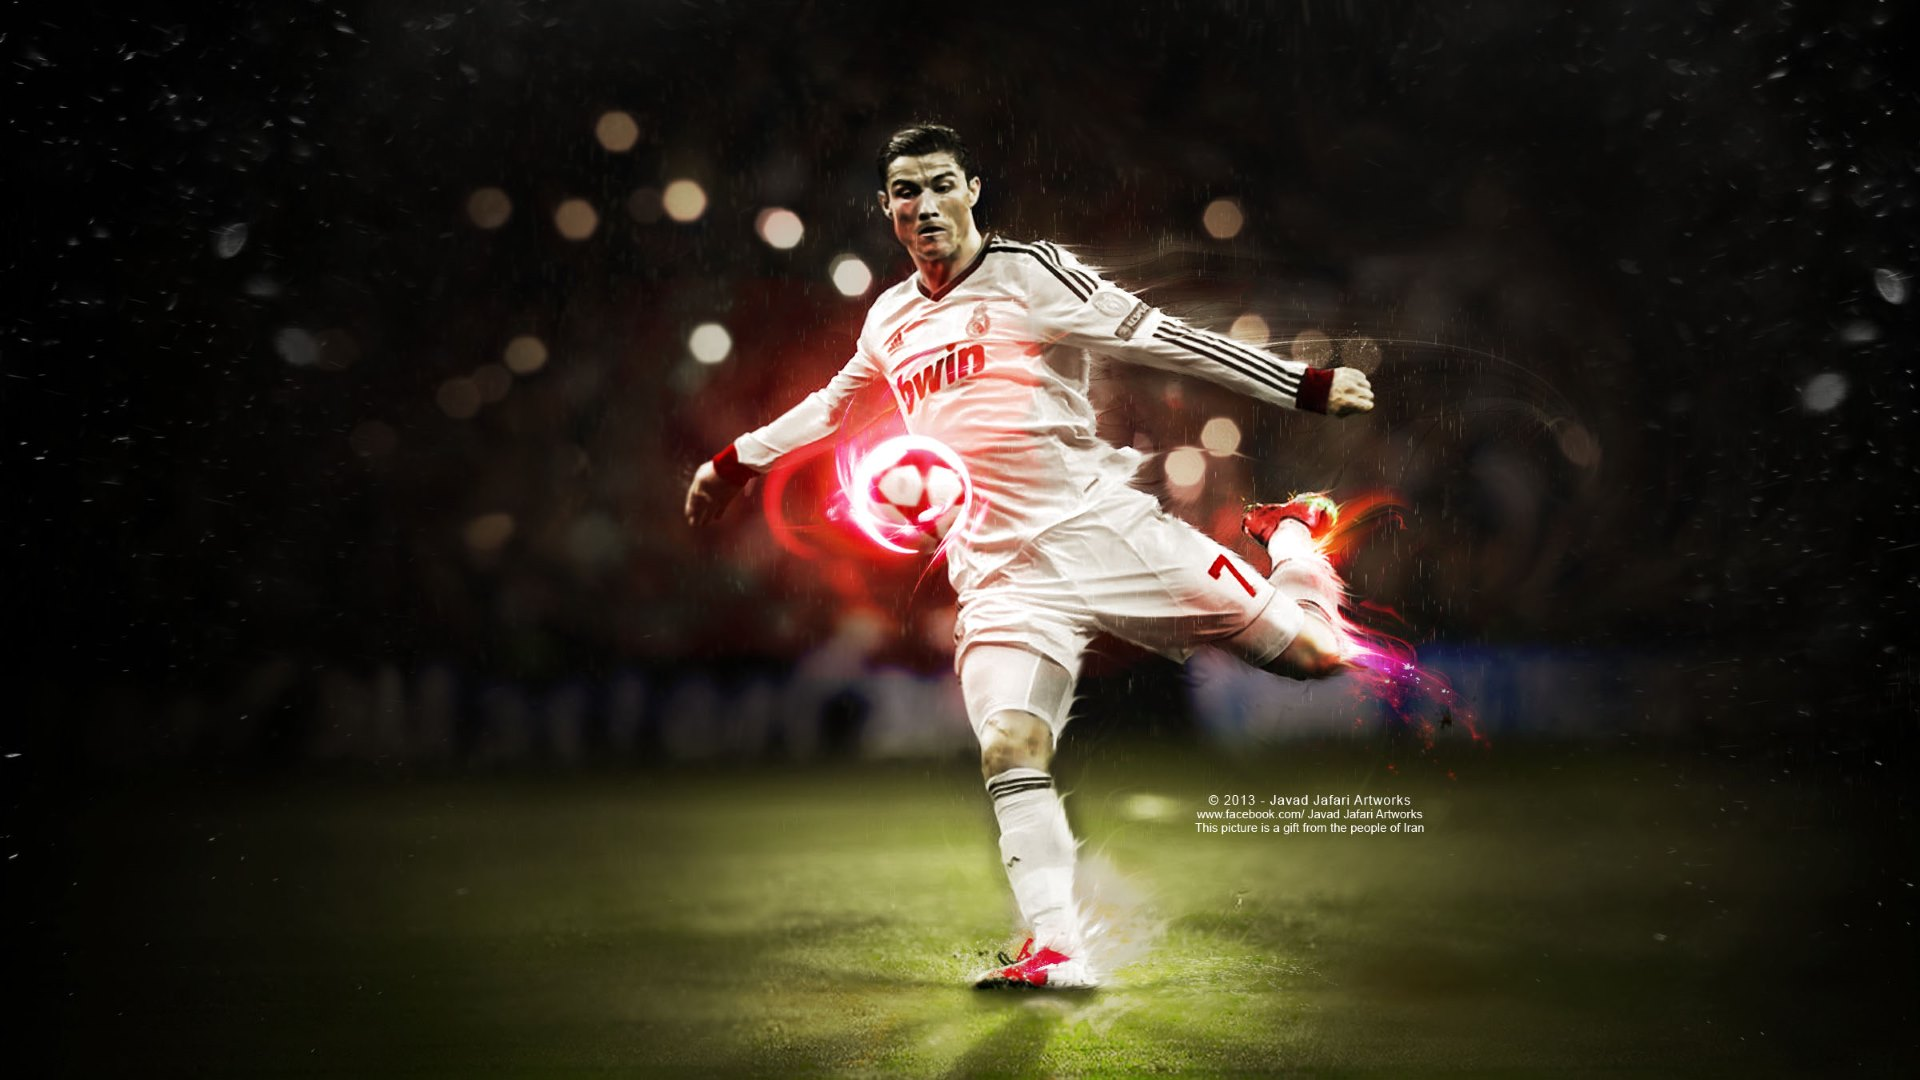 cristiano ronaldo wallpaper   Cristiano Ronaldo HD Wallpapers  CR Best Photos Sporteology 1920x1080